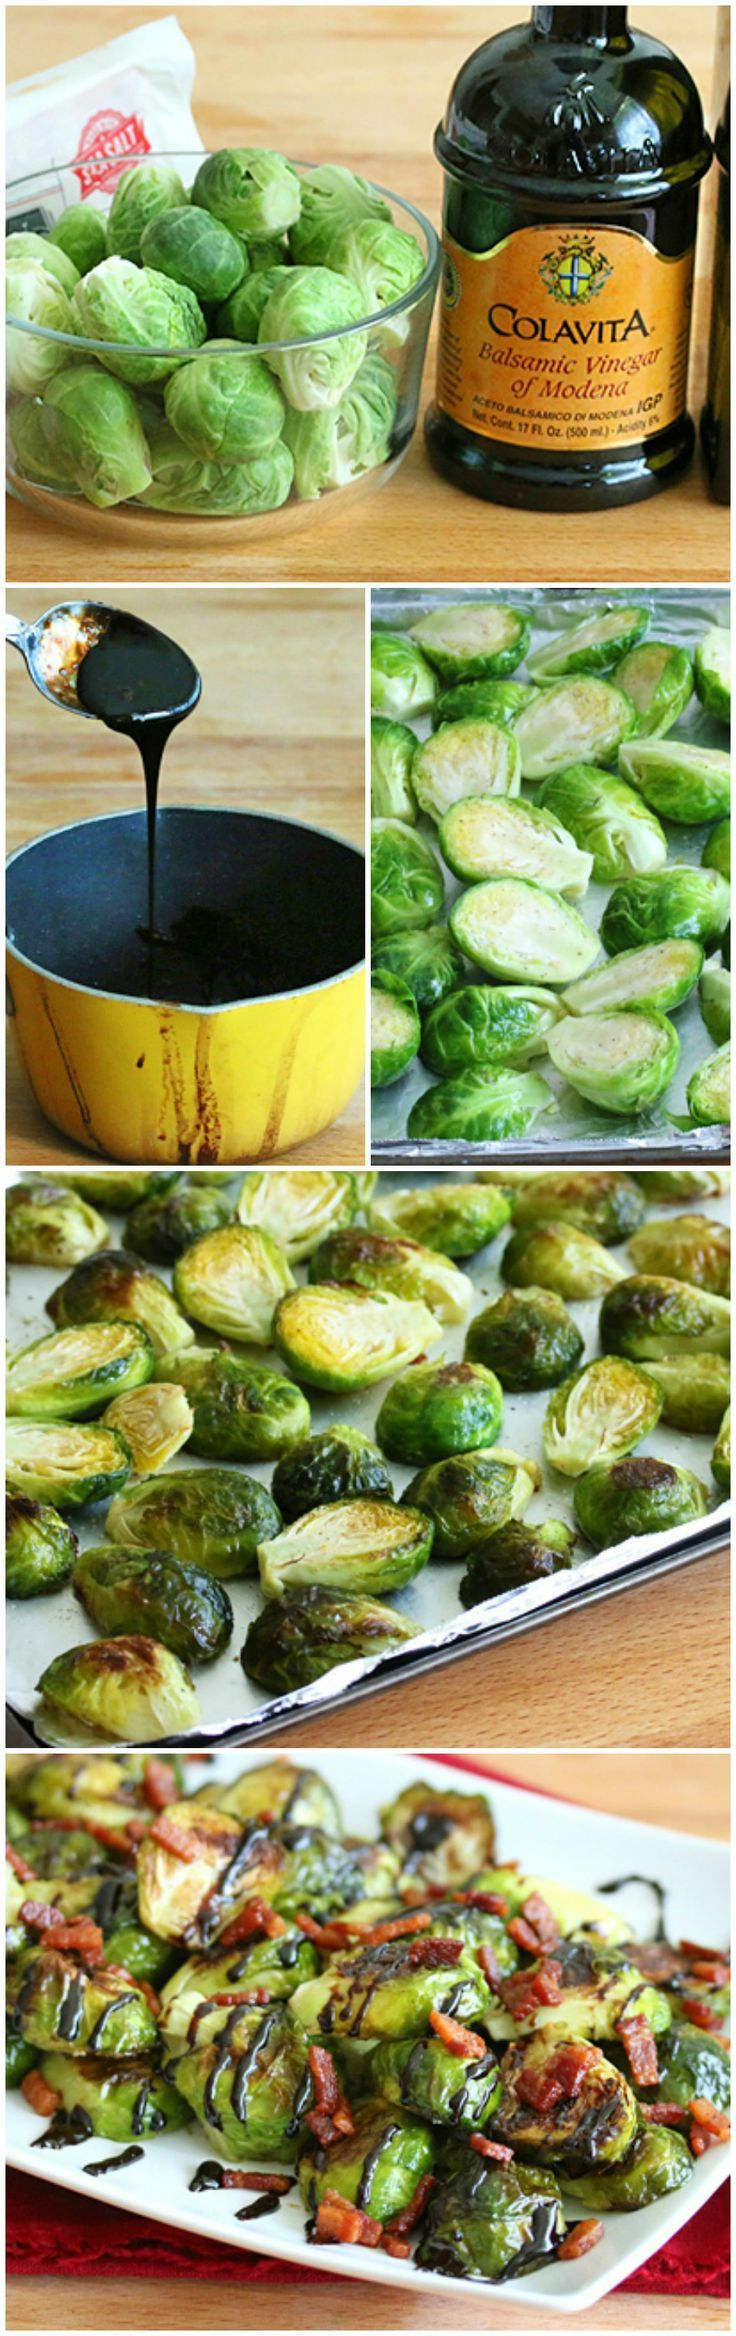 Grilled Brussels Sprouts w/ turkey bacon sounds incredible